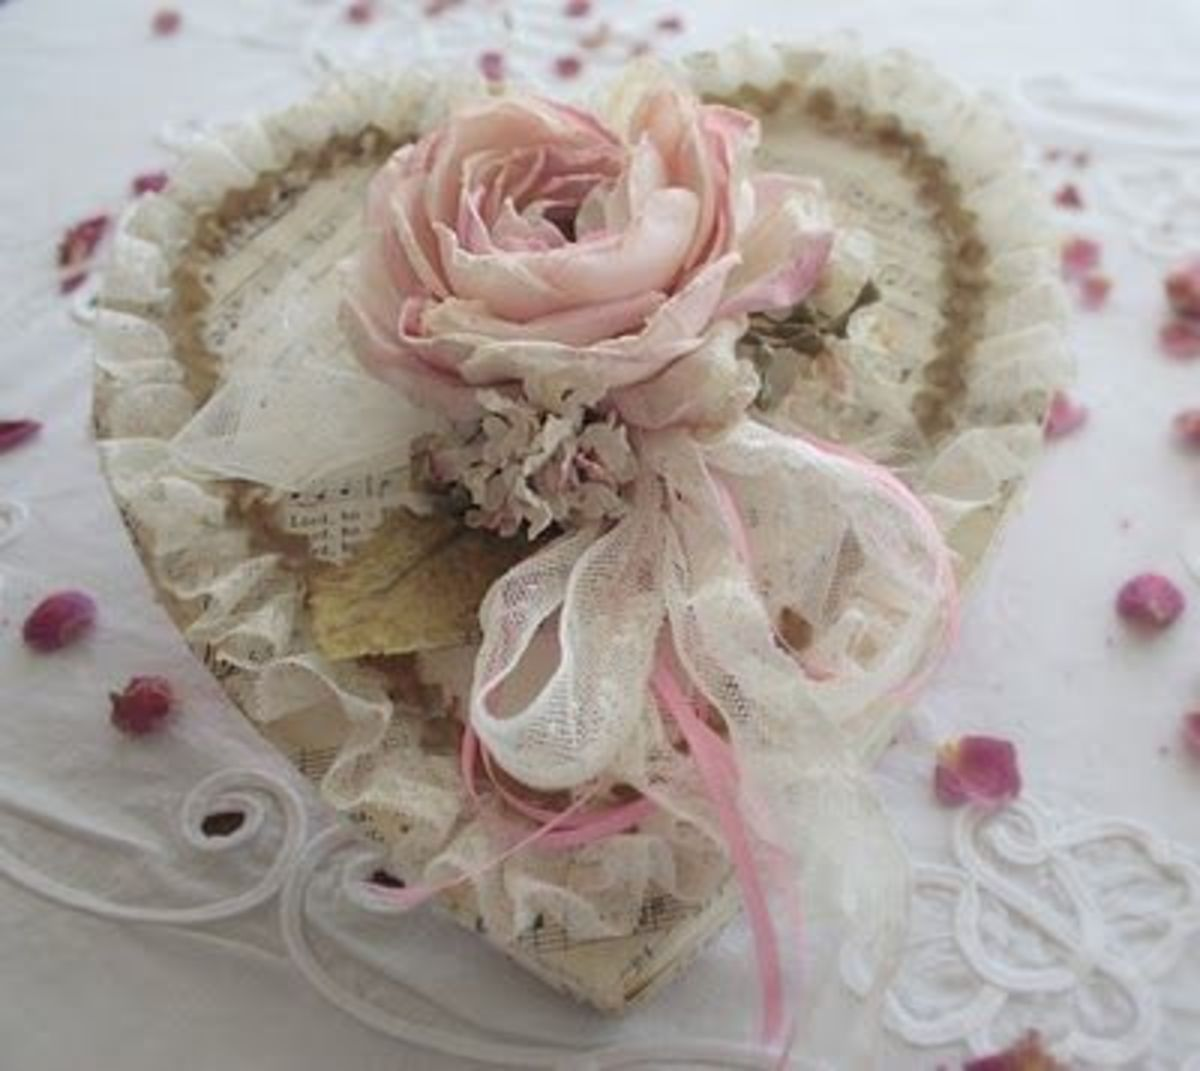 Lace heart with a rose